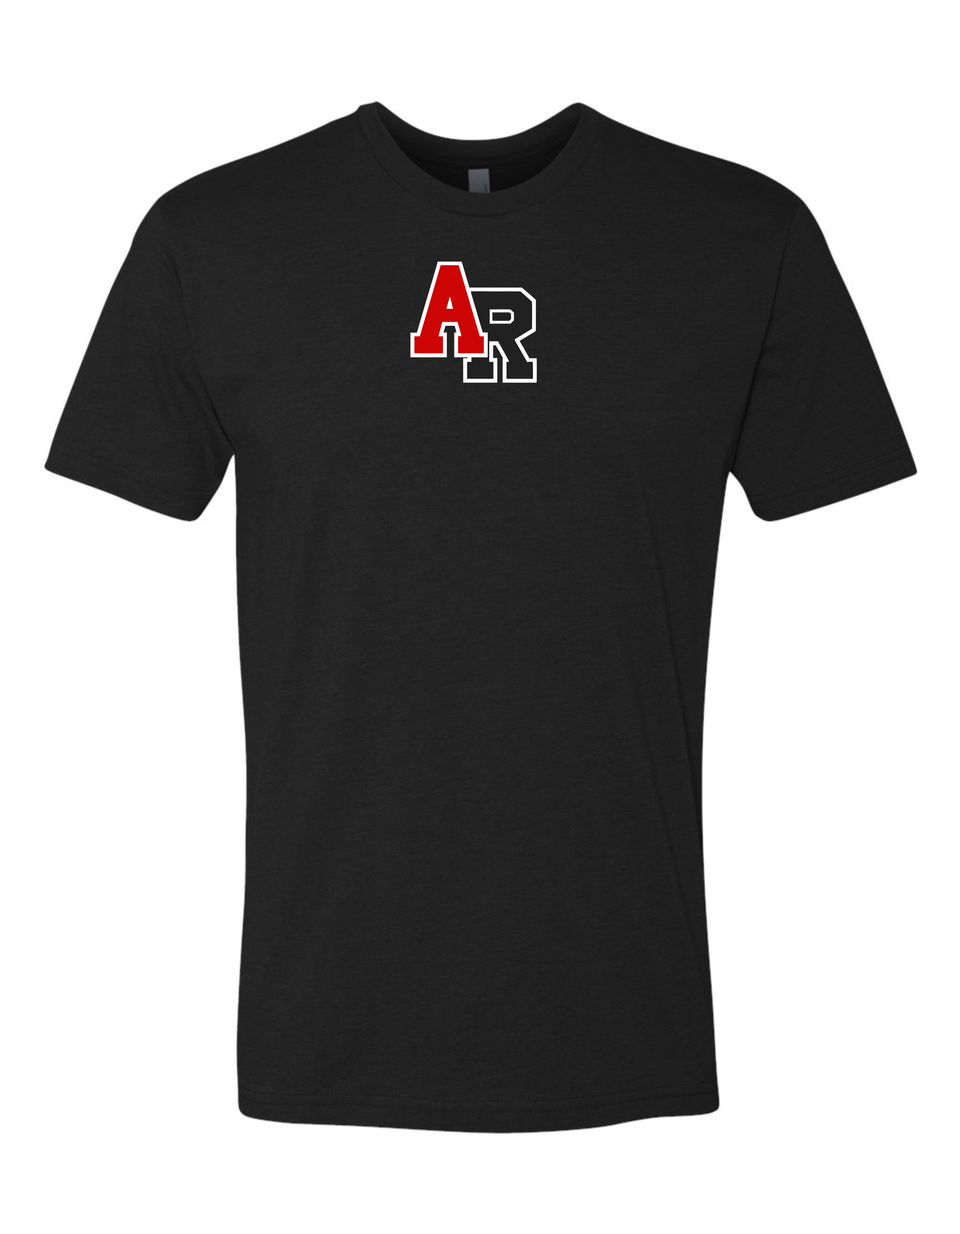 AR black out T-shirt